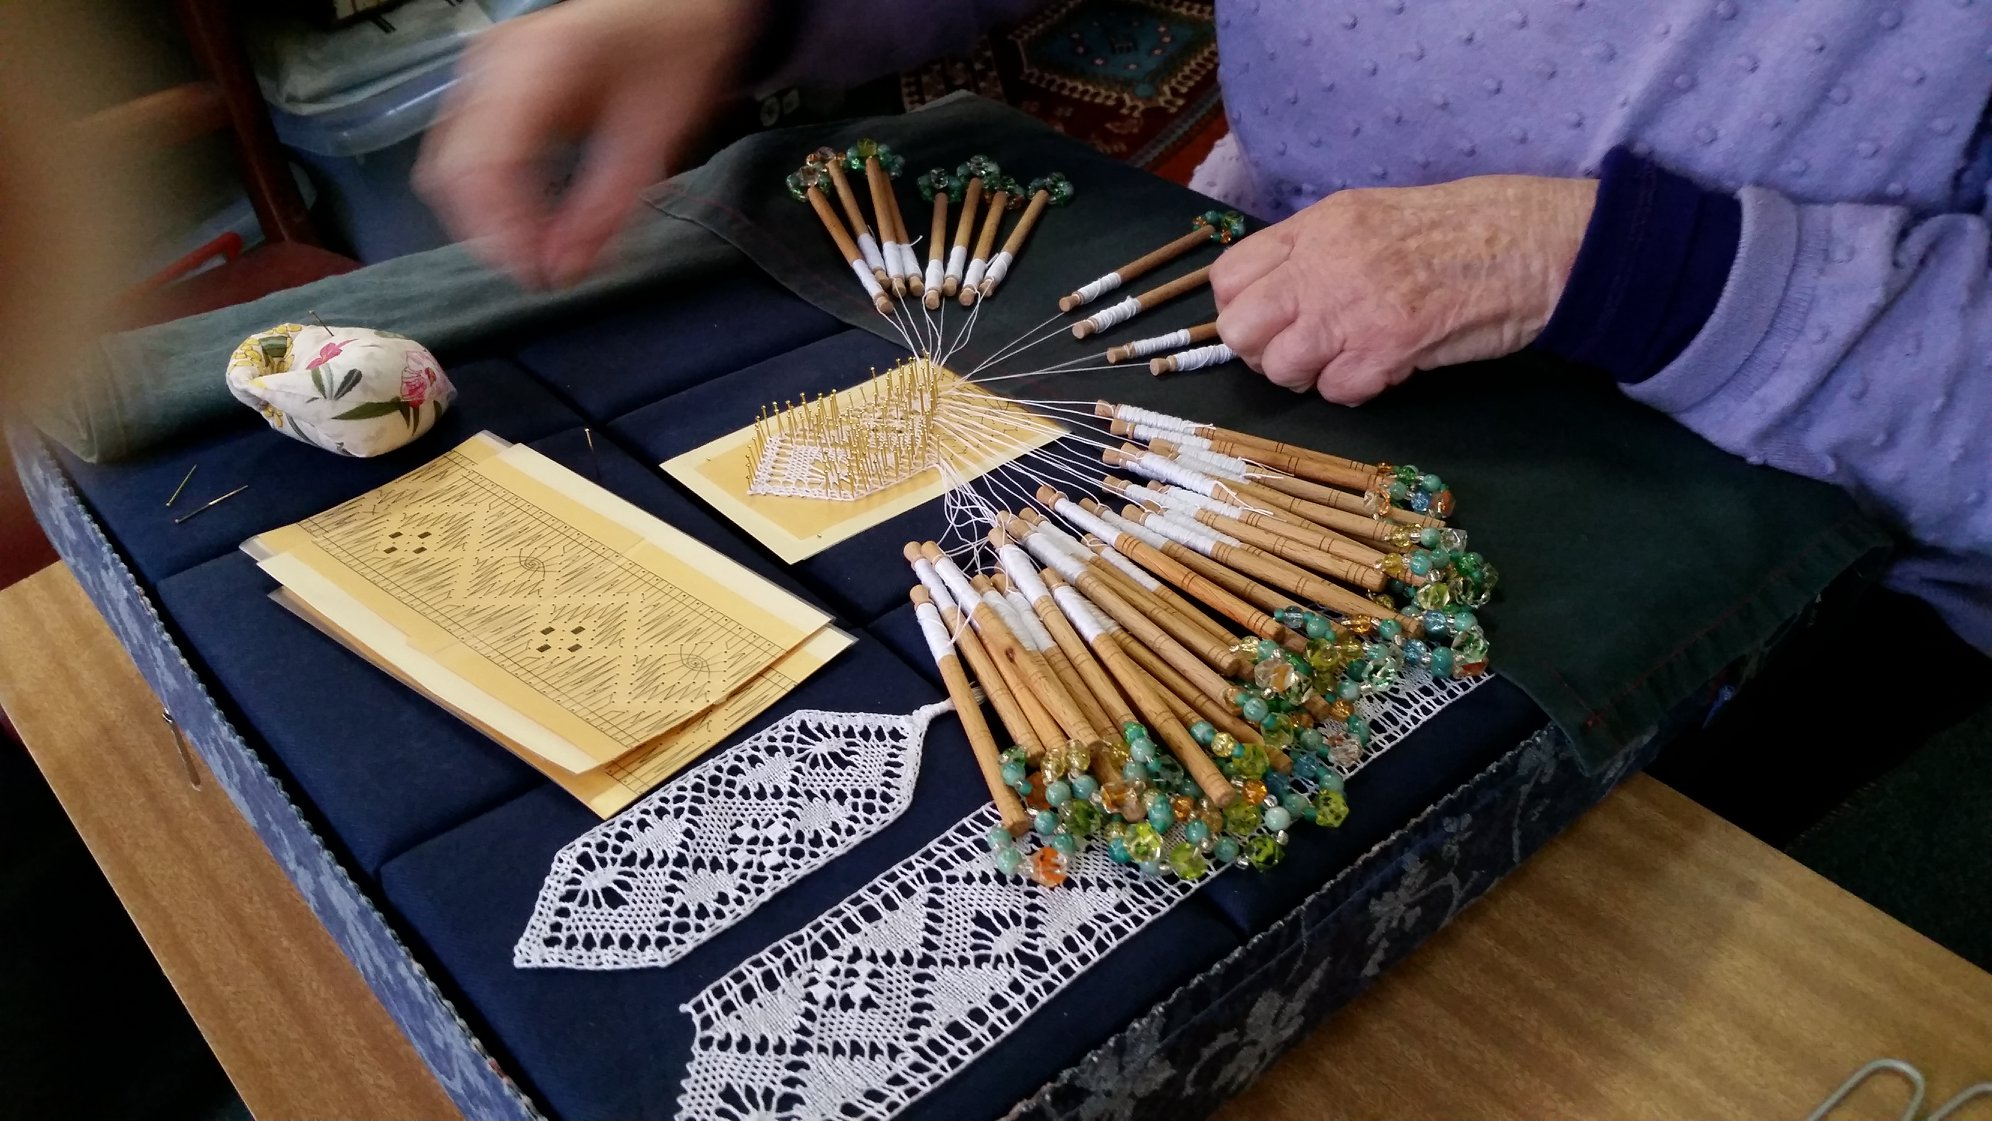 Making lace with bobbins and thread